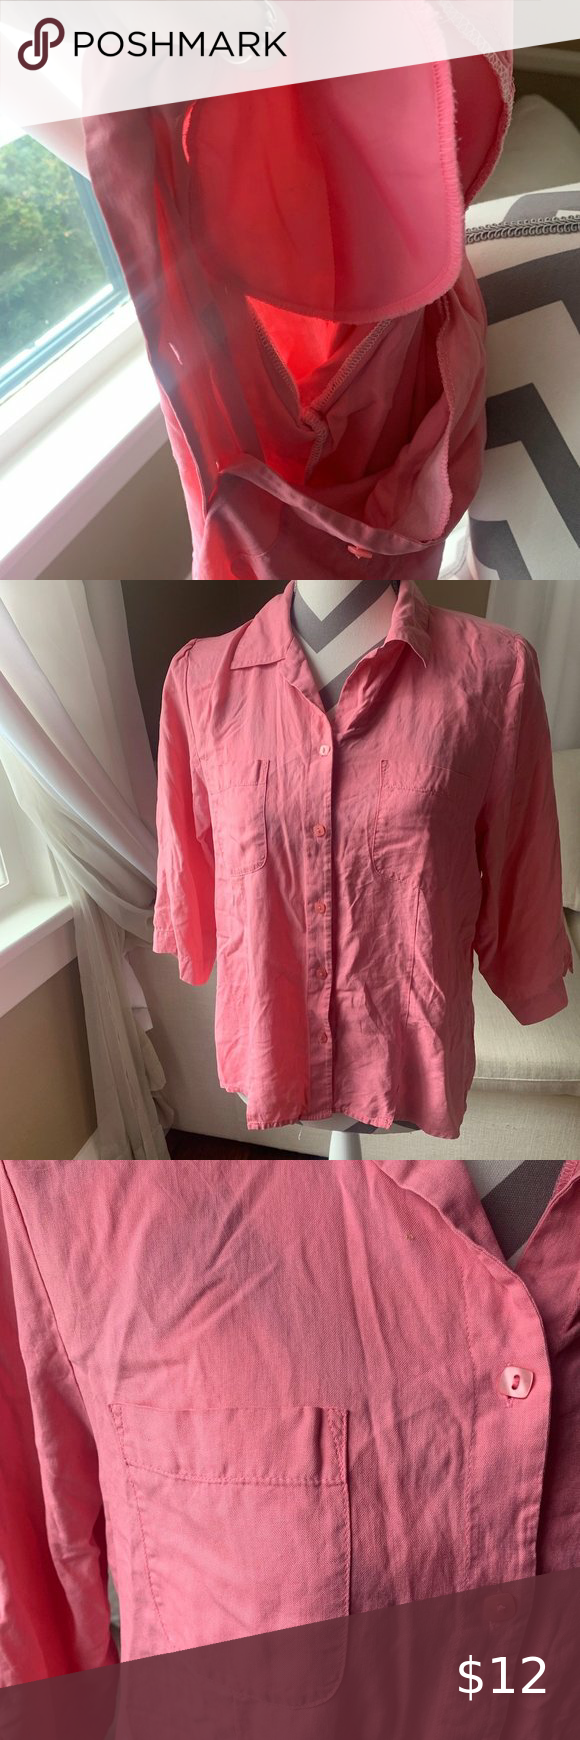 womens pink pocket button t shirt/top Needs a new home 🏡 Make an offer please!  See photos for more info  I am happy to answer and questions you ma…